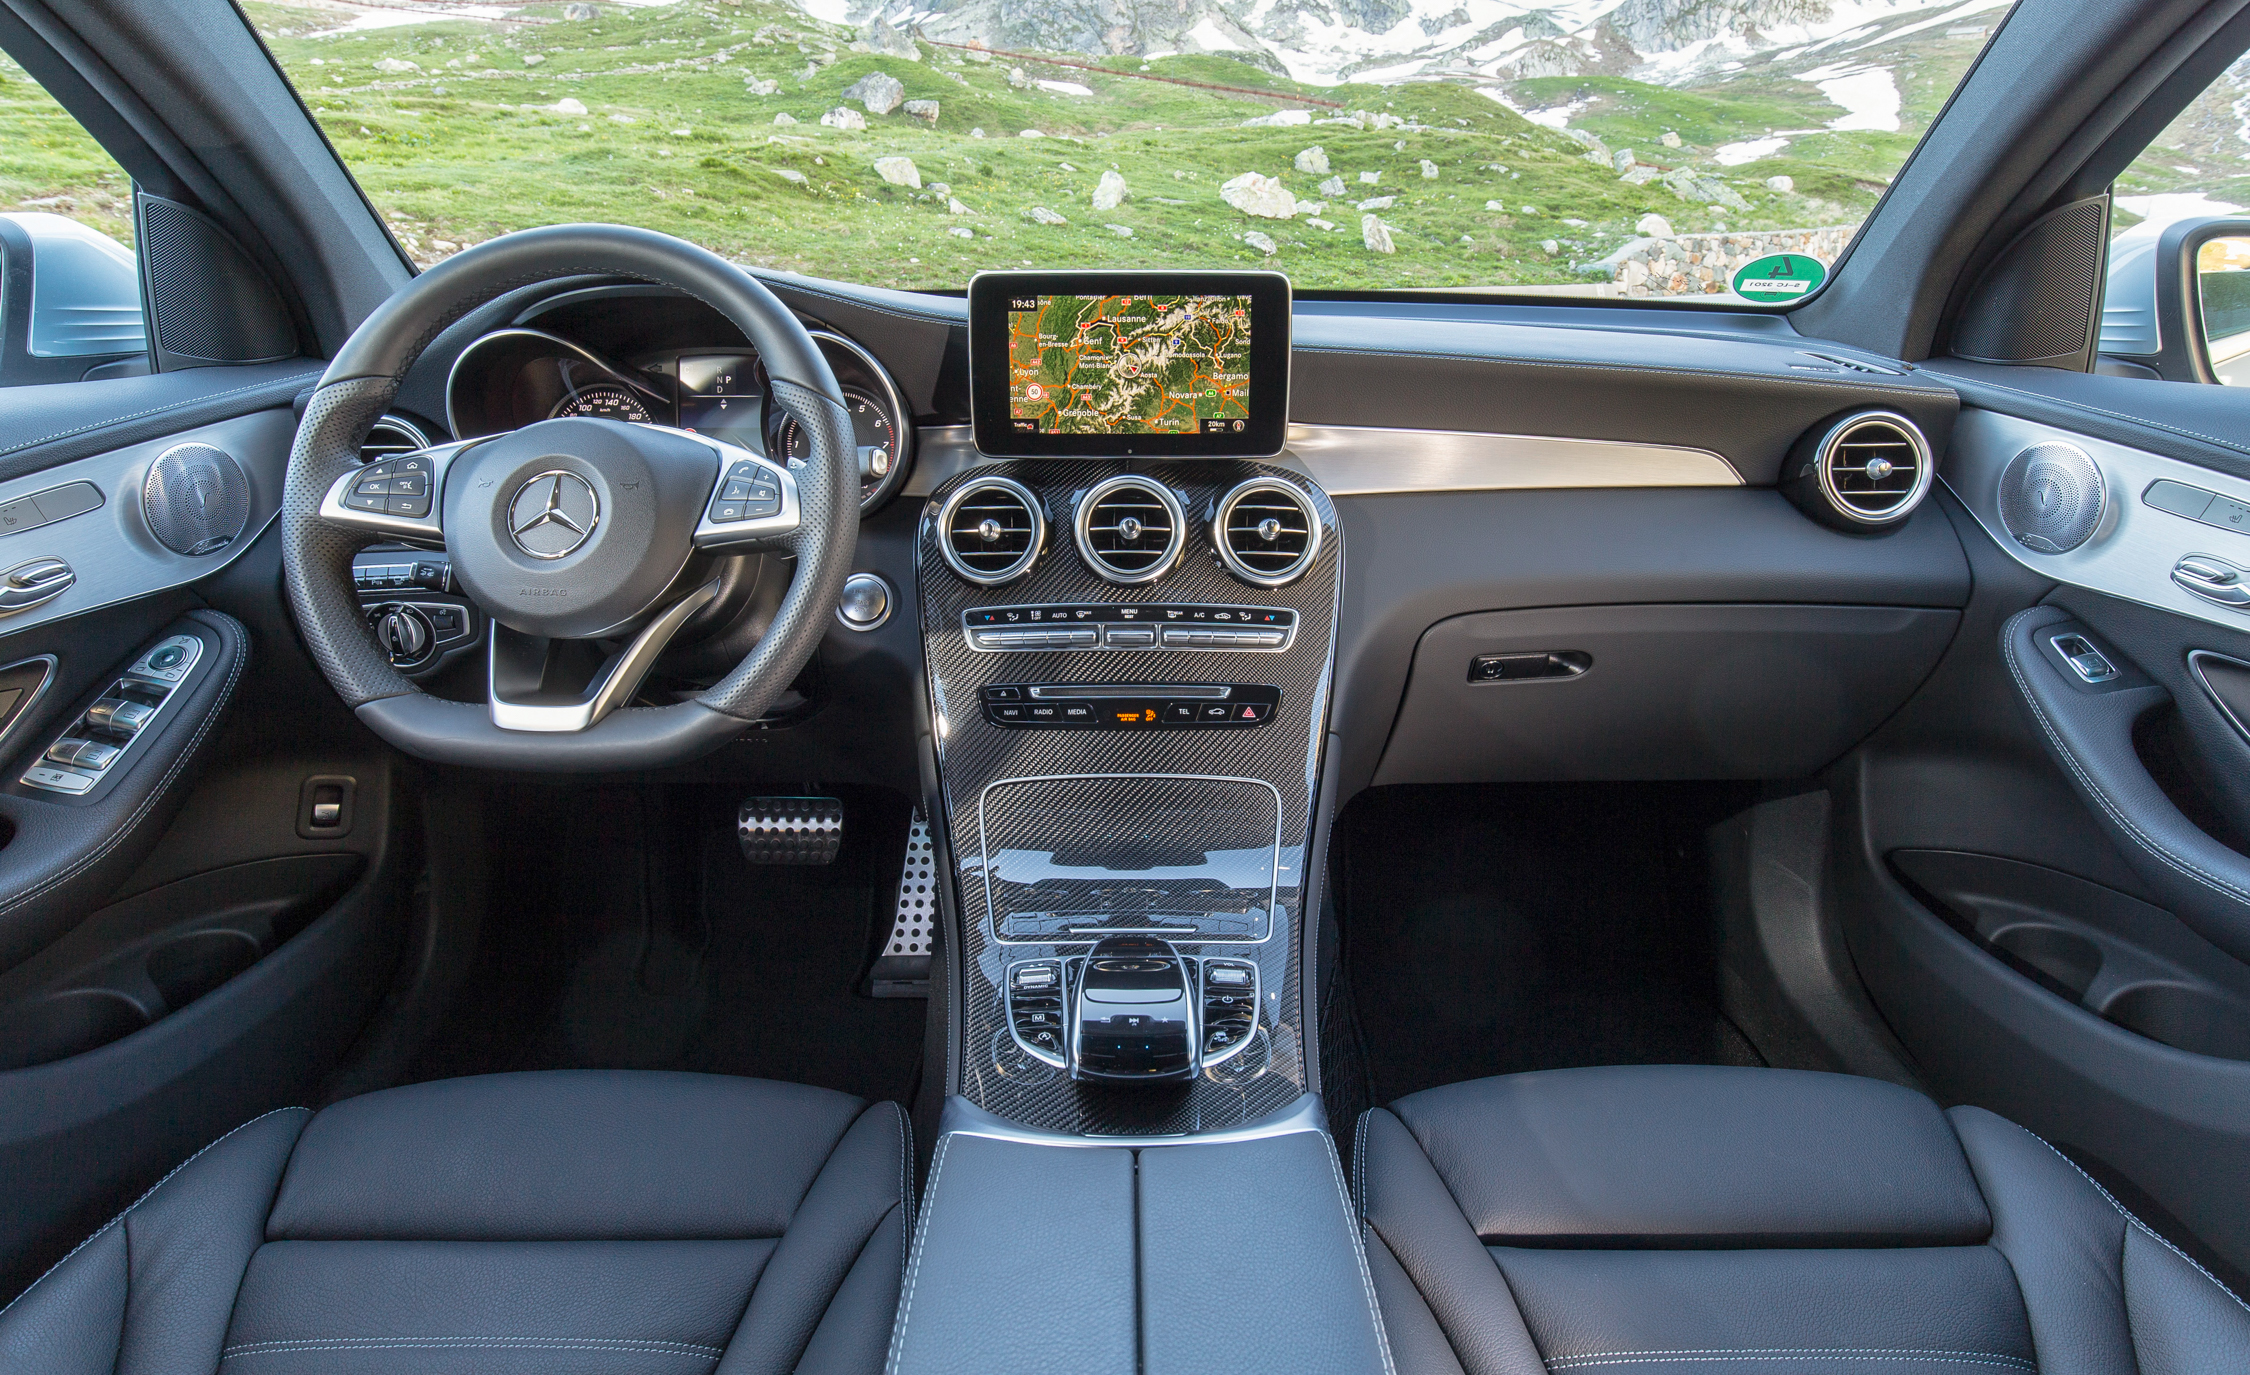 2017 Mercedes Benz GLC300 4MATIC Coupe (Photo 16 of 19)